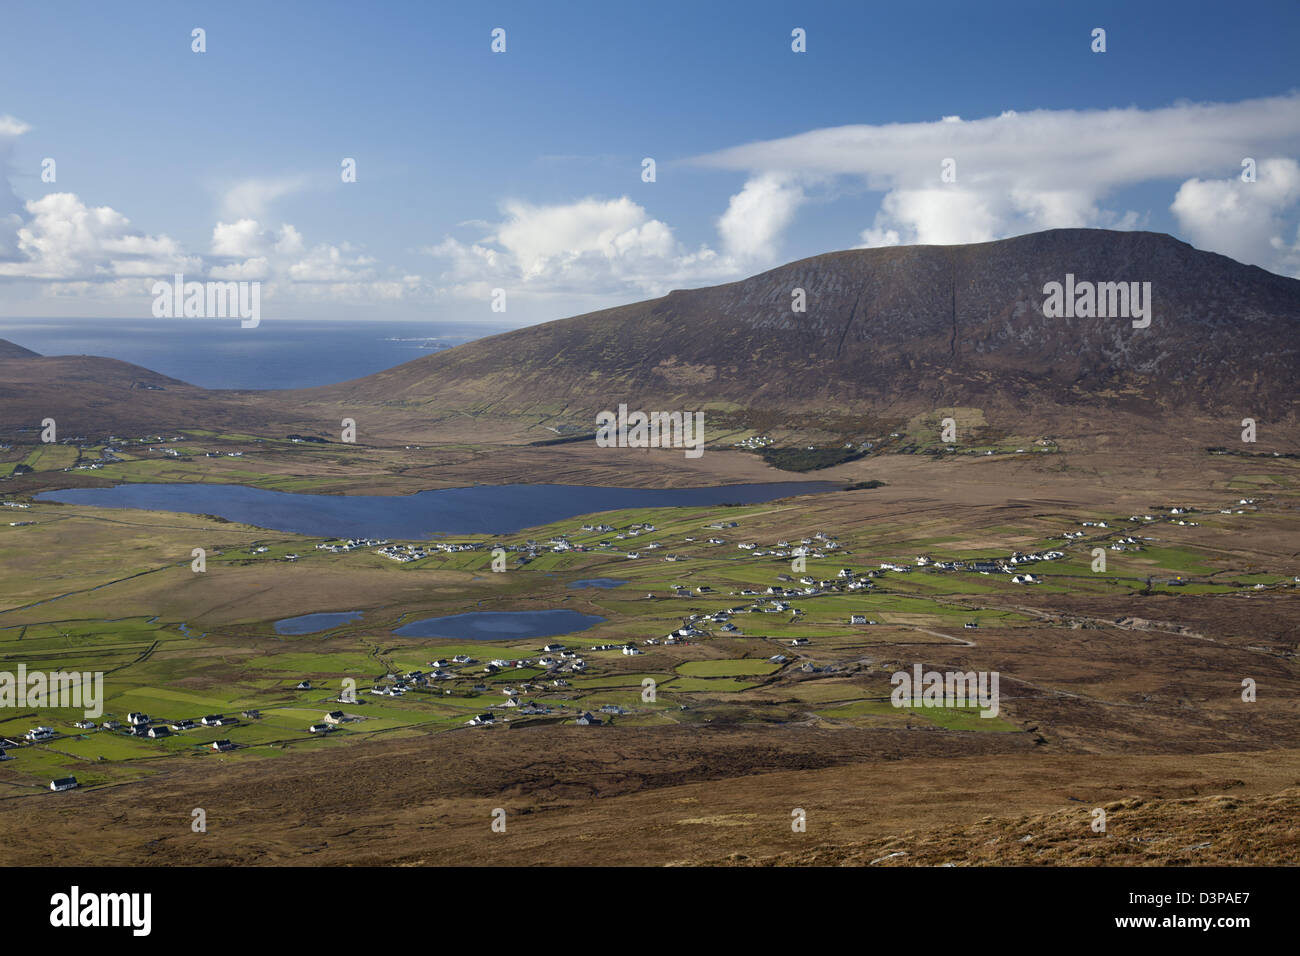 View across Keel and Keel Lough to Slievemore mountain, Achill Island, County Mayo, Ireland. - Stock Image